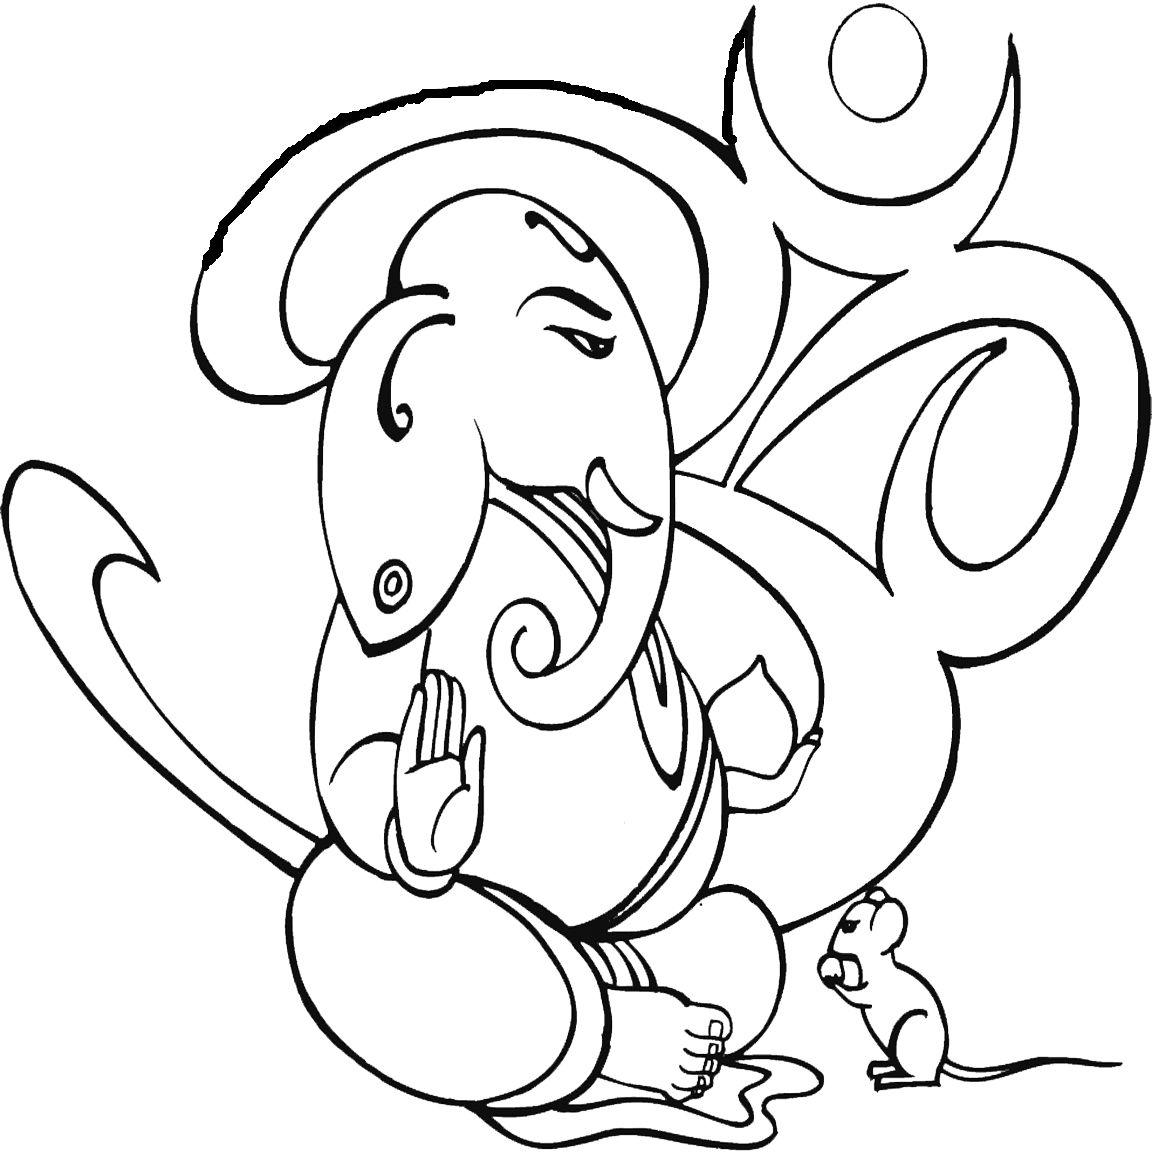 Ganesh Line Drawing : Ganesh line drawing clipart best